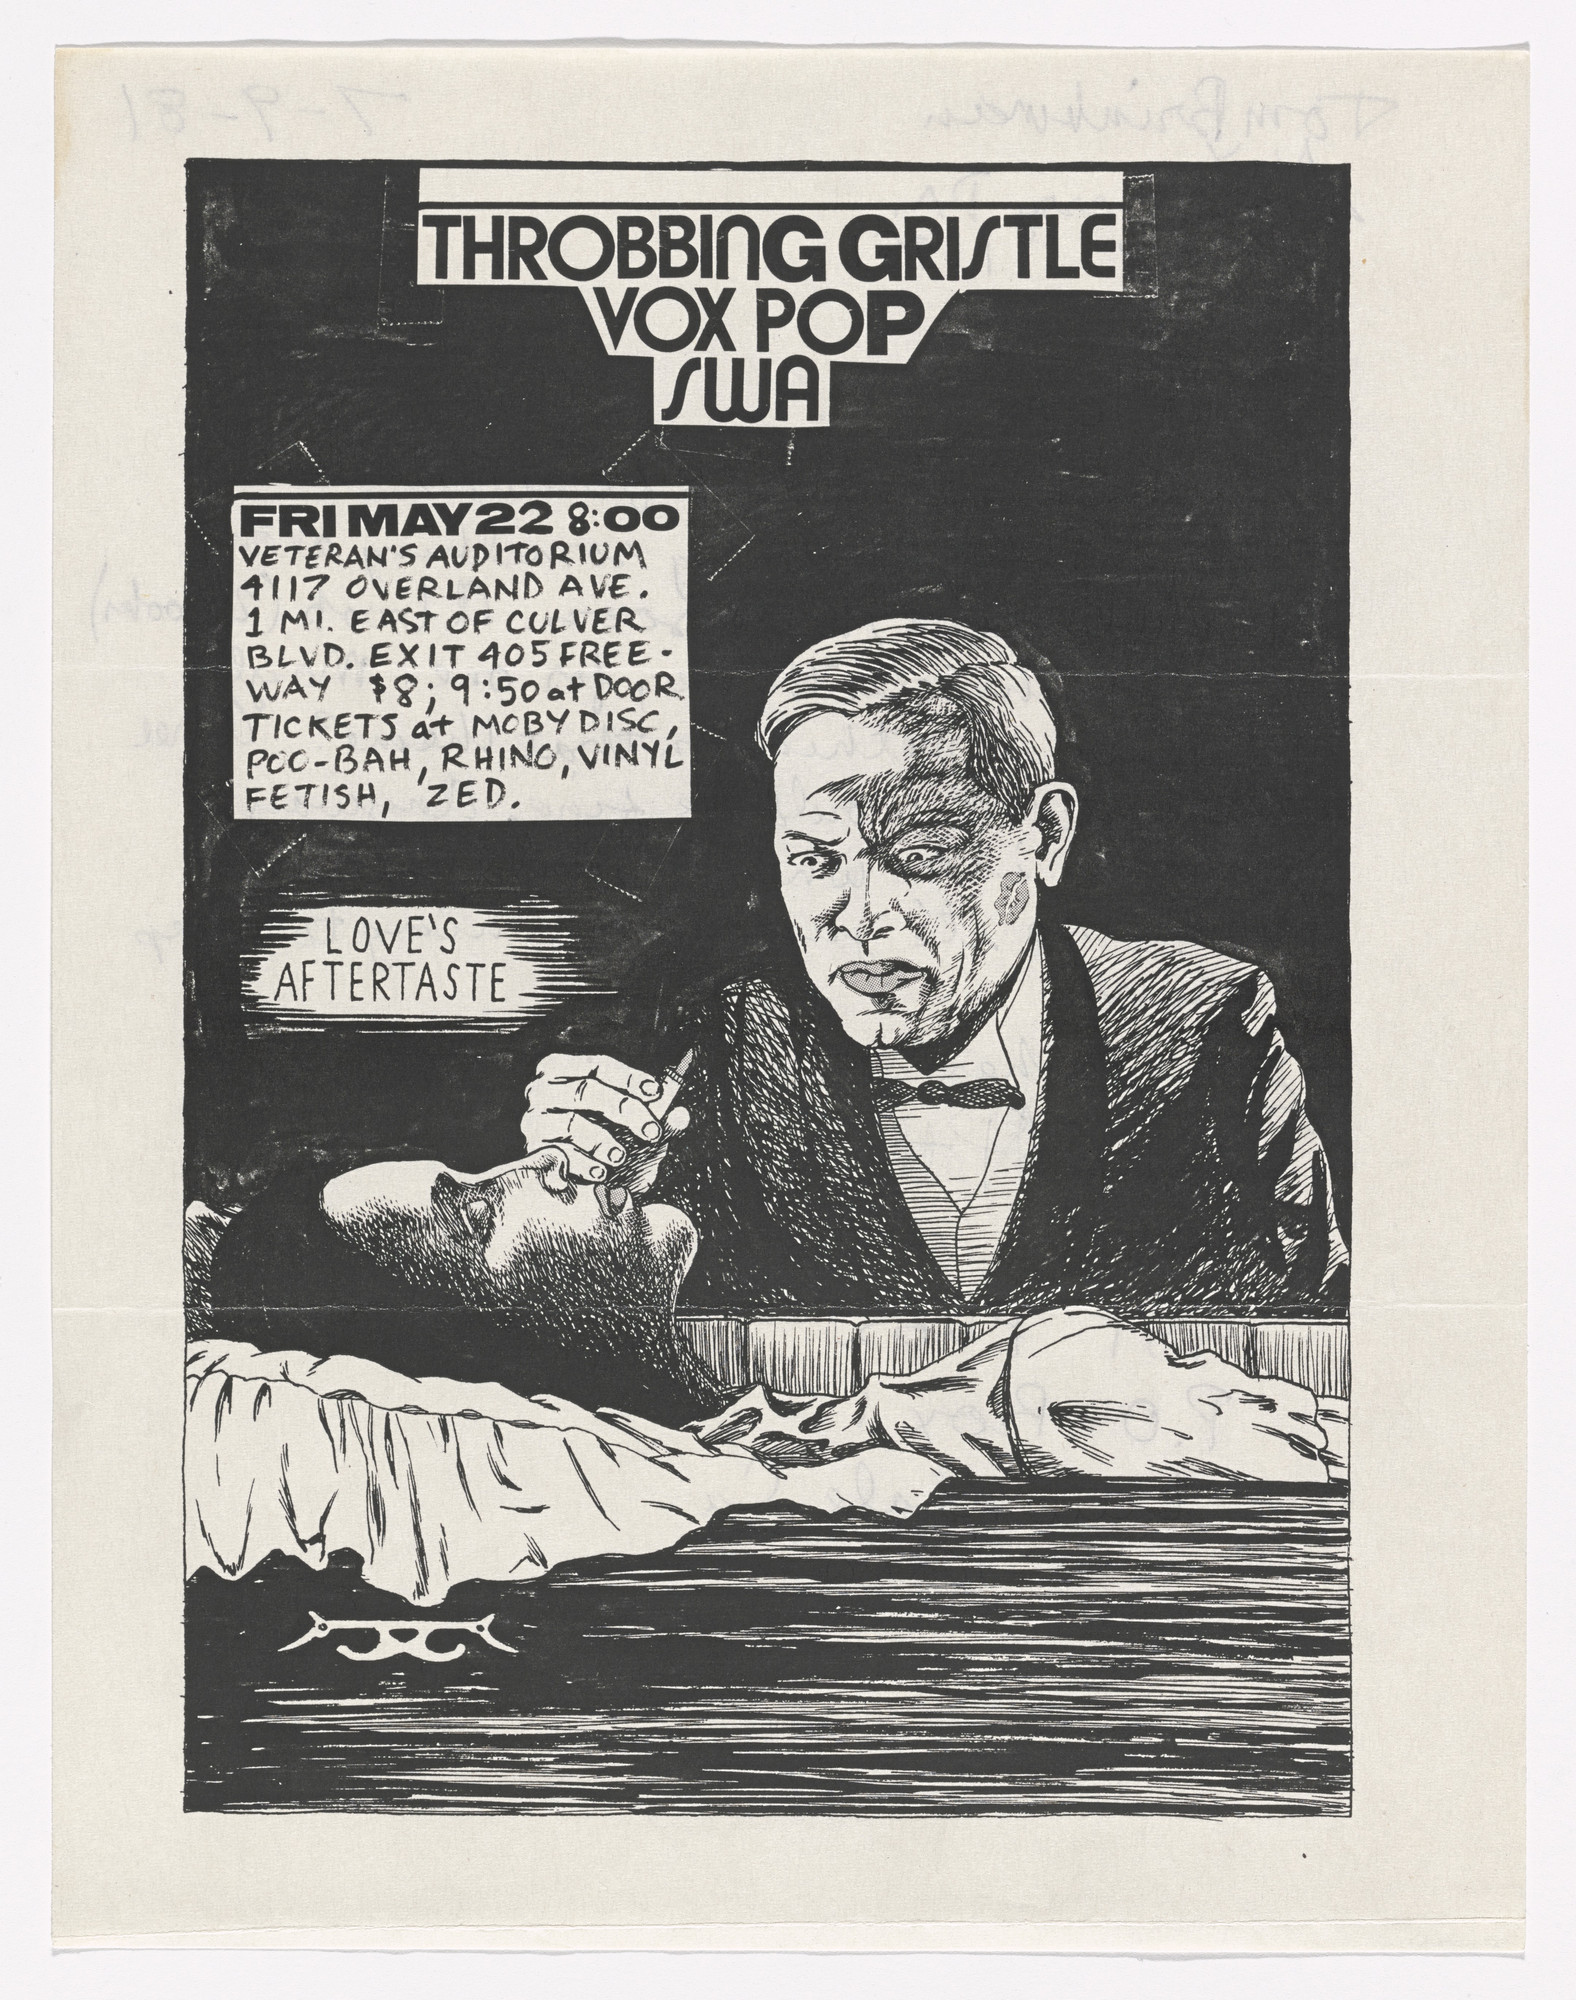 Raymond Pettibon. Throbbing Gristle at Veteran's Auditorium. May 22, 1981